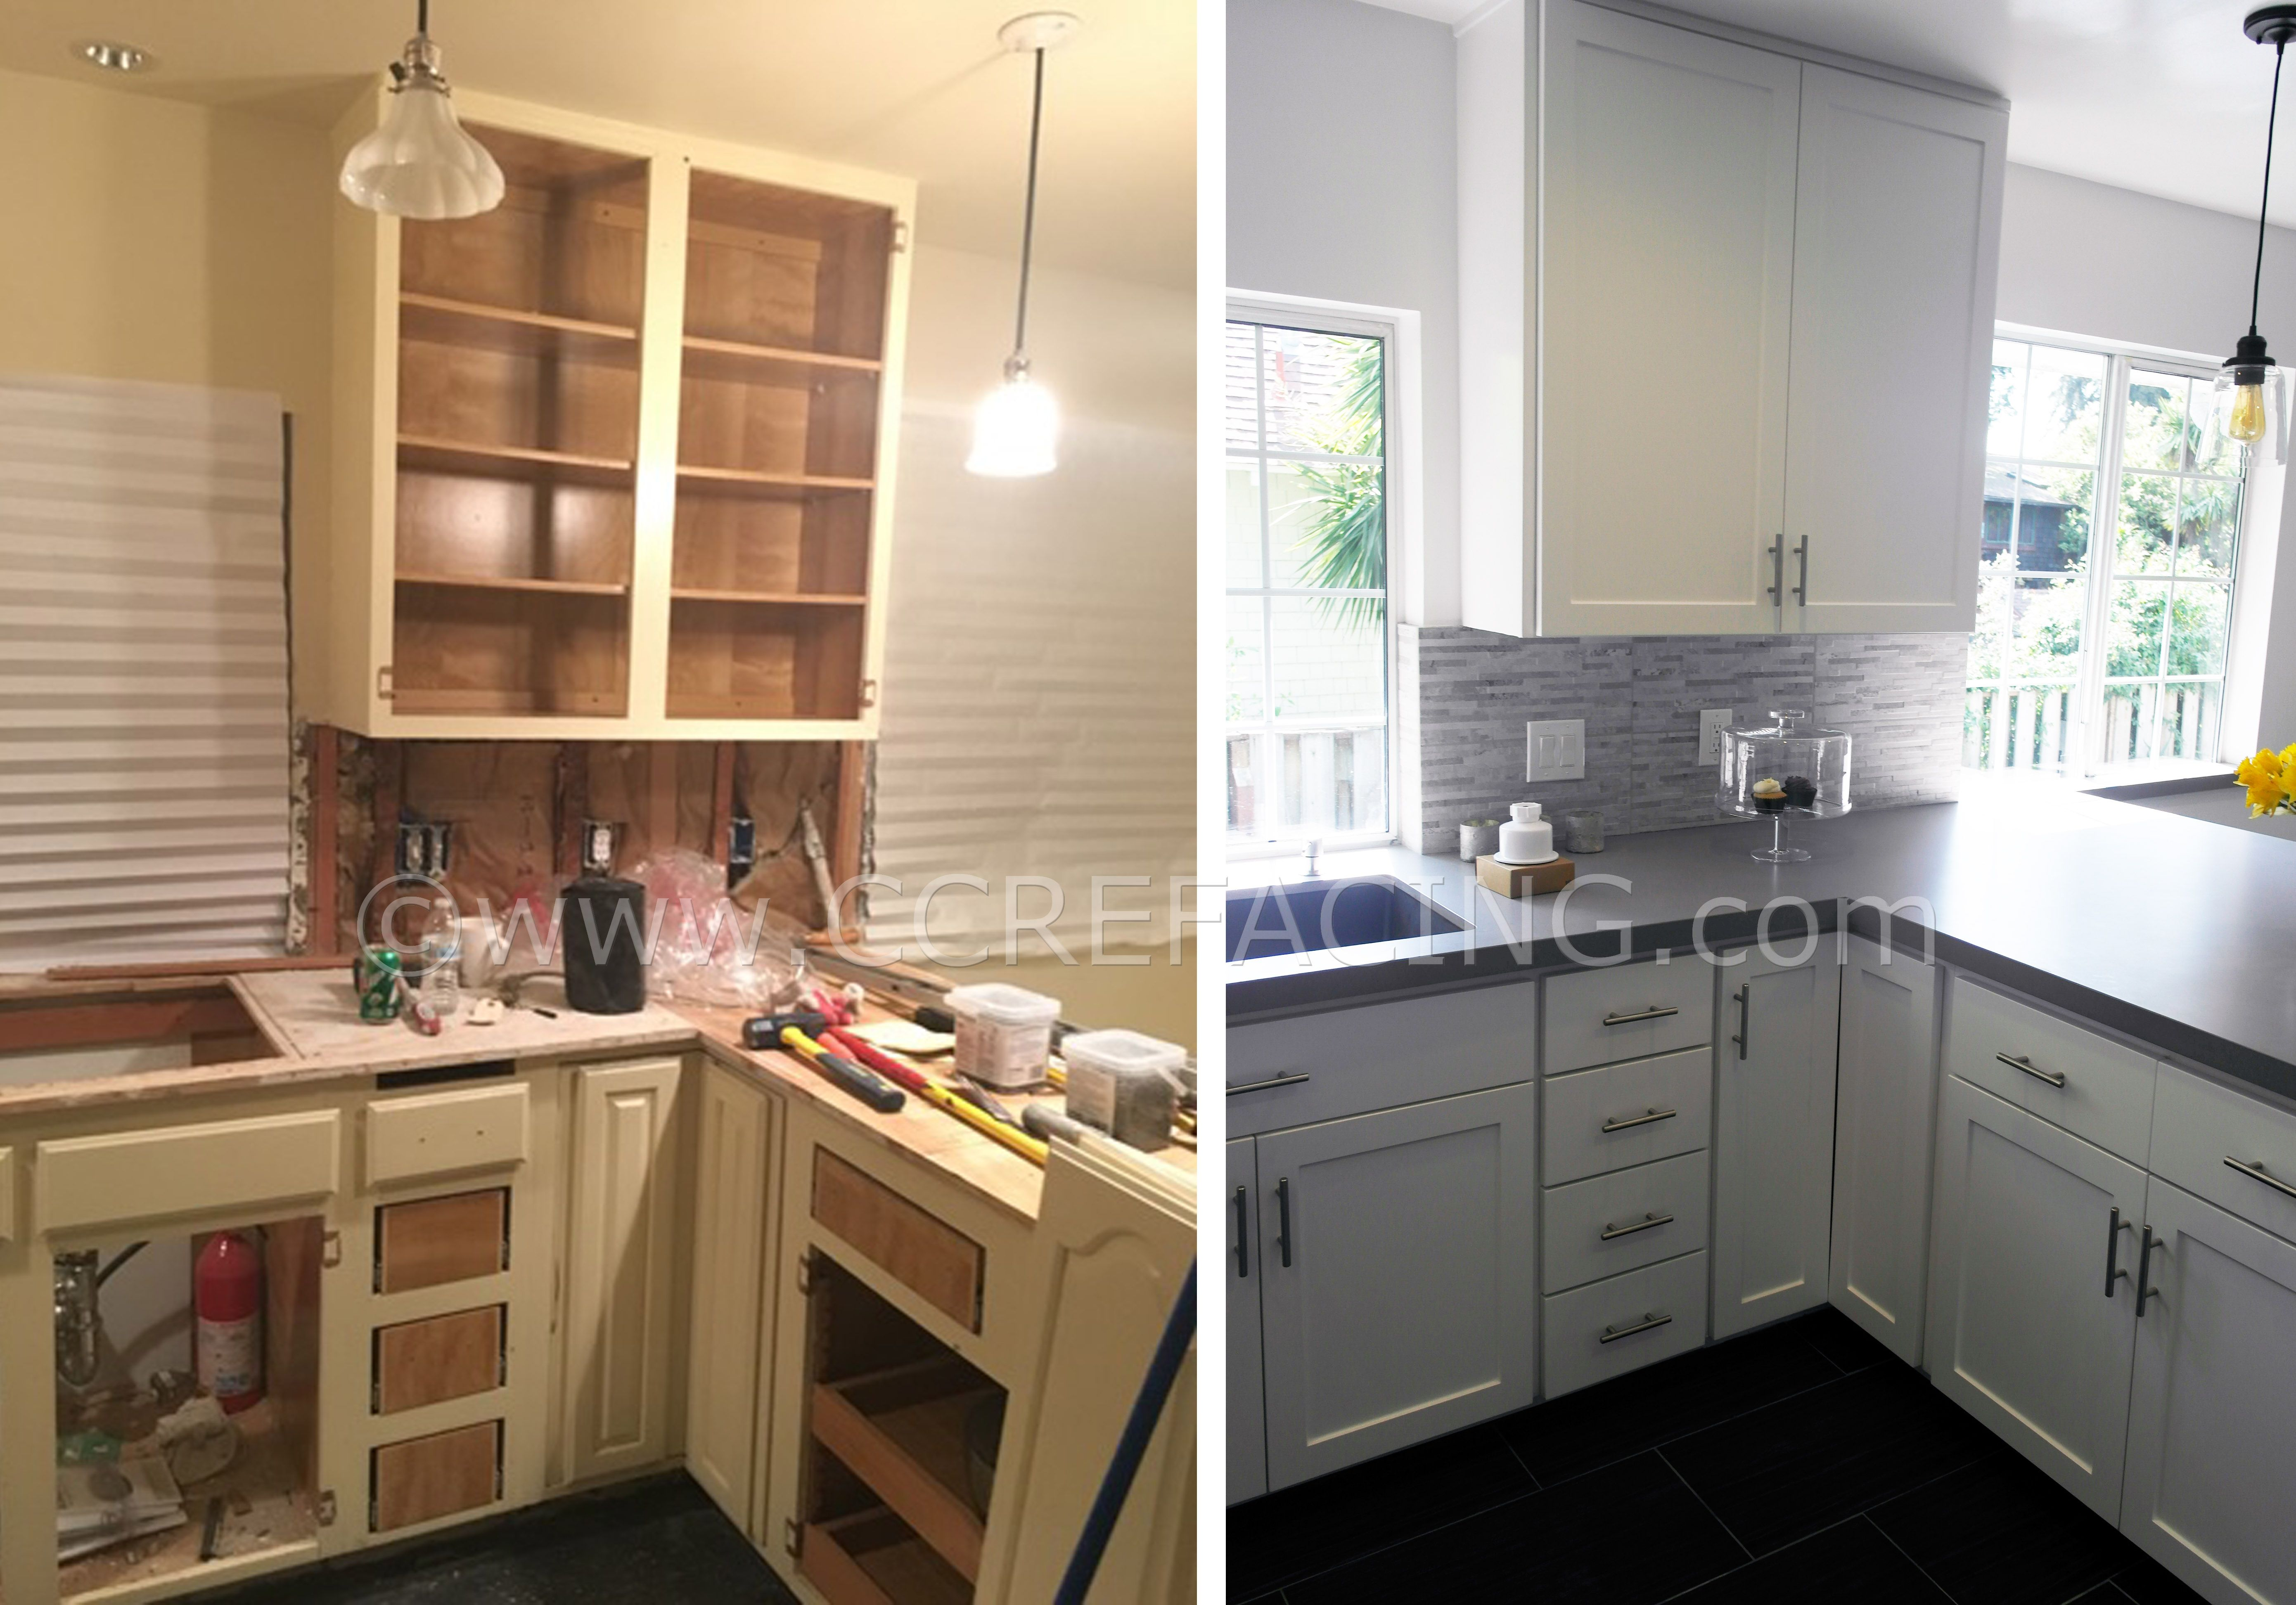 Oakland Cabinet Refacing With White Shaker Doors Cabinet Refacing Cabinet Custom Cabinets